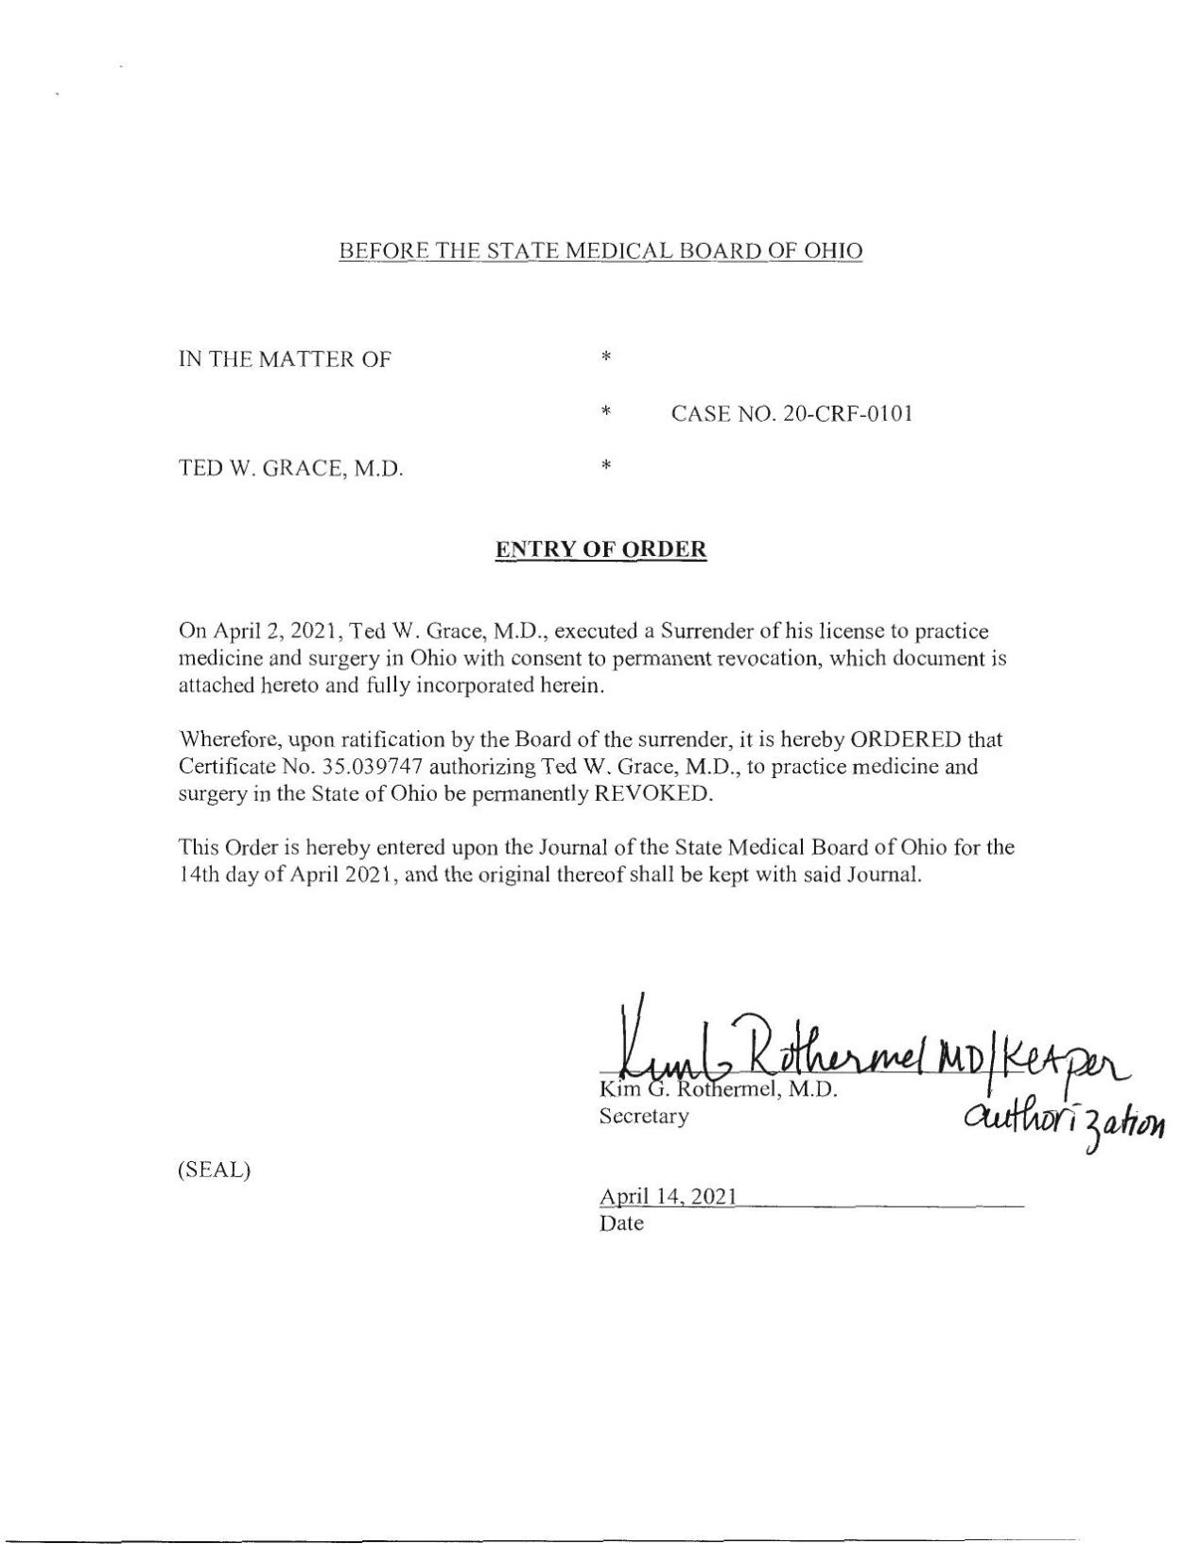 Order surrendering Ted Grace's Ohio medical license